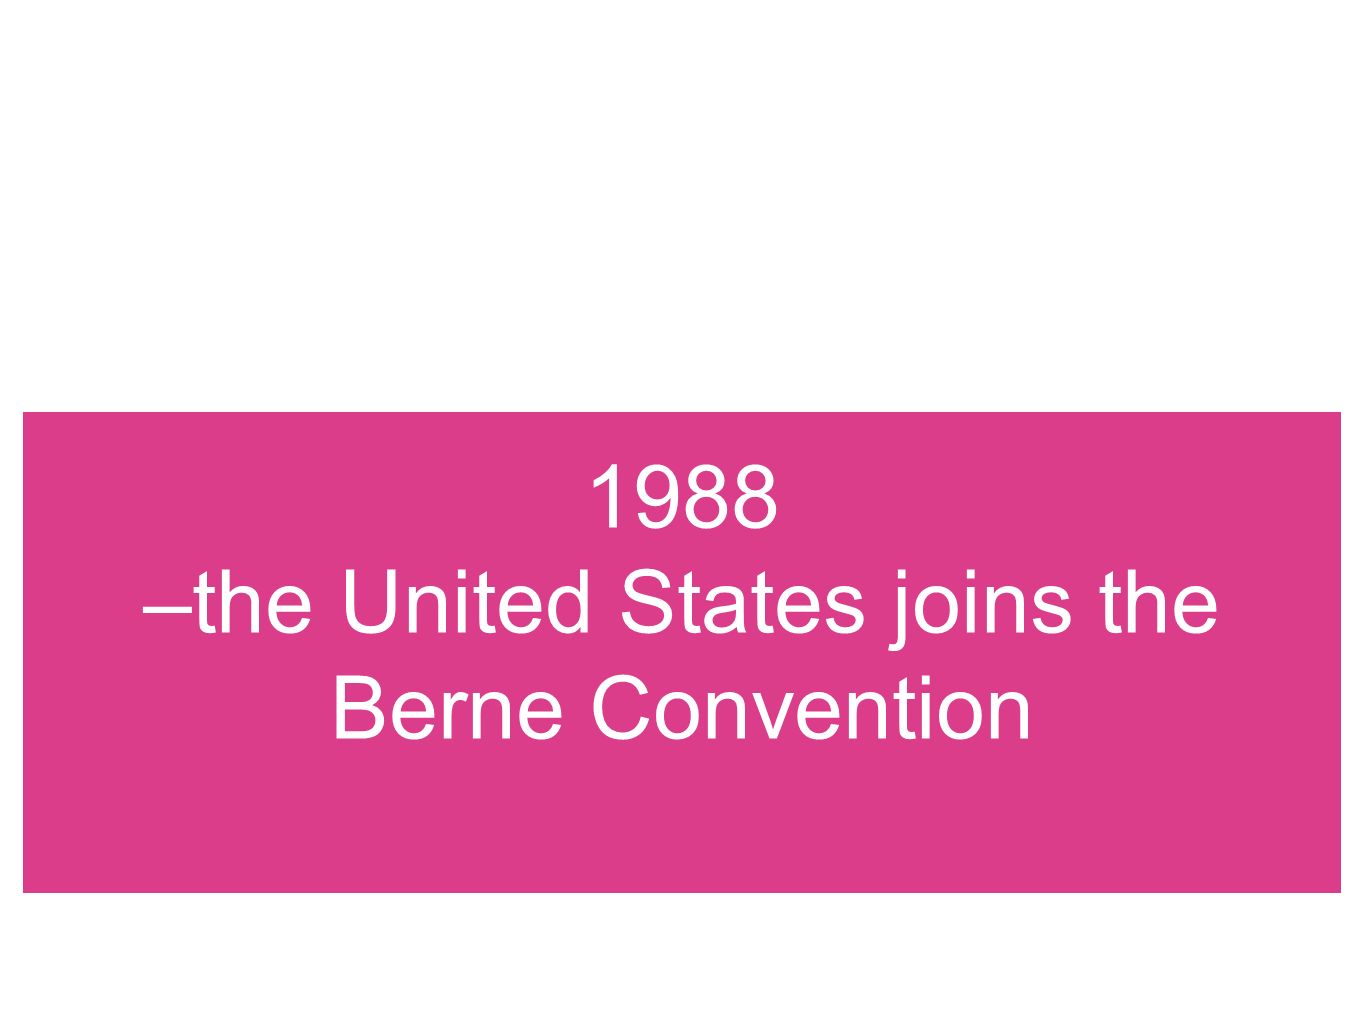 1988 –the United States joins the Berne Convention